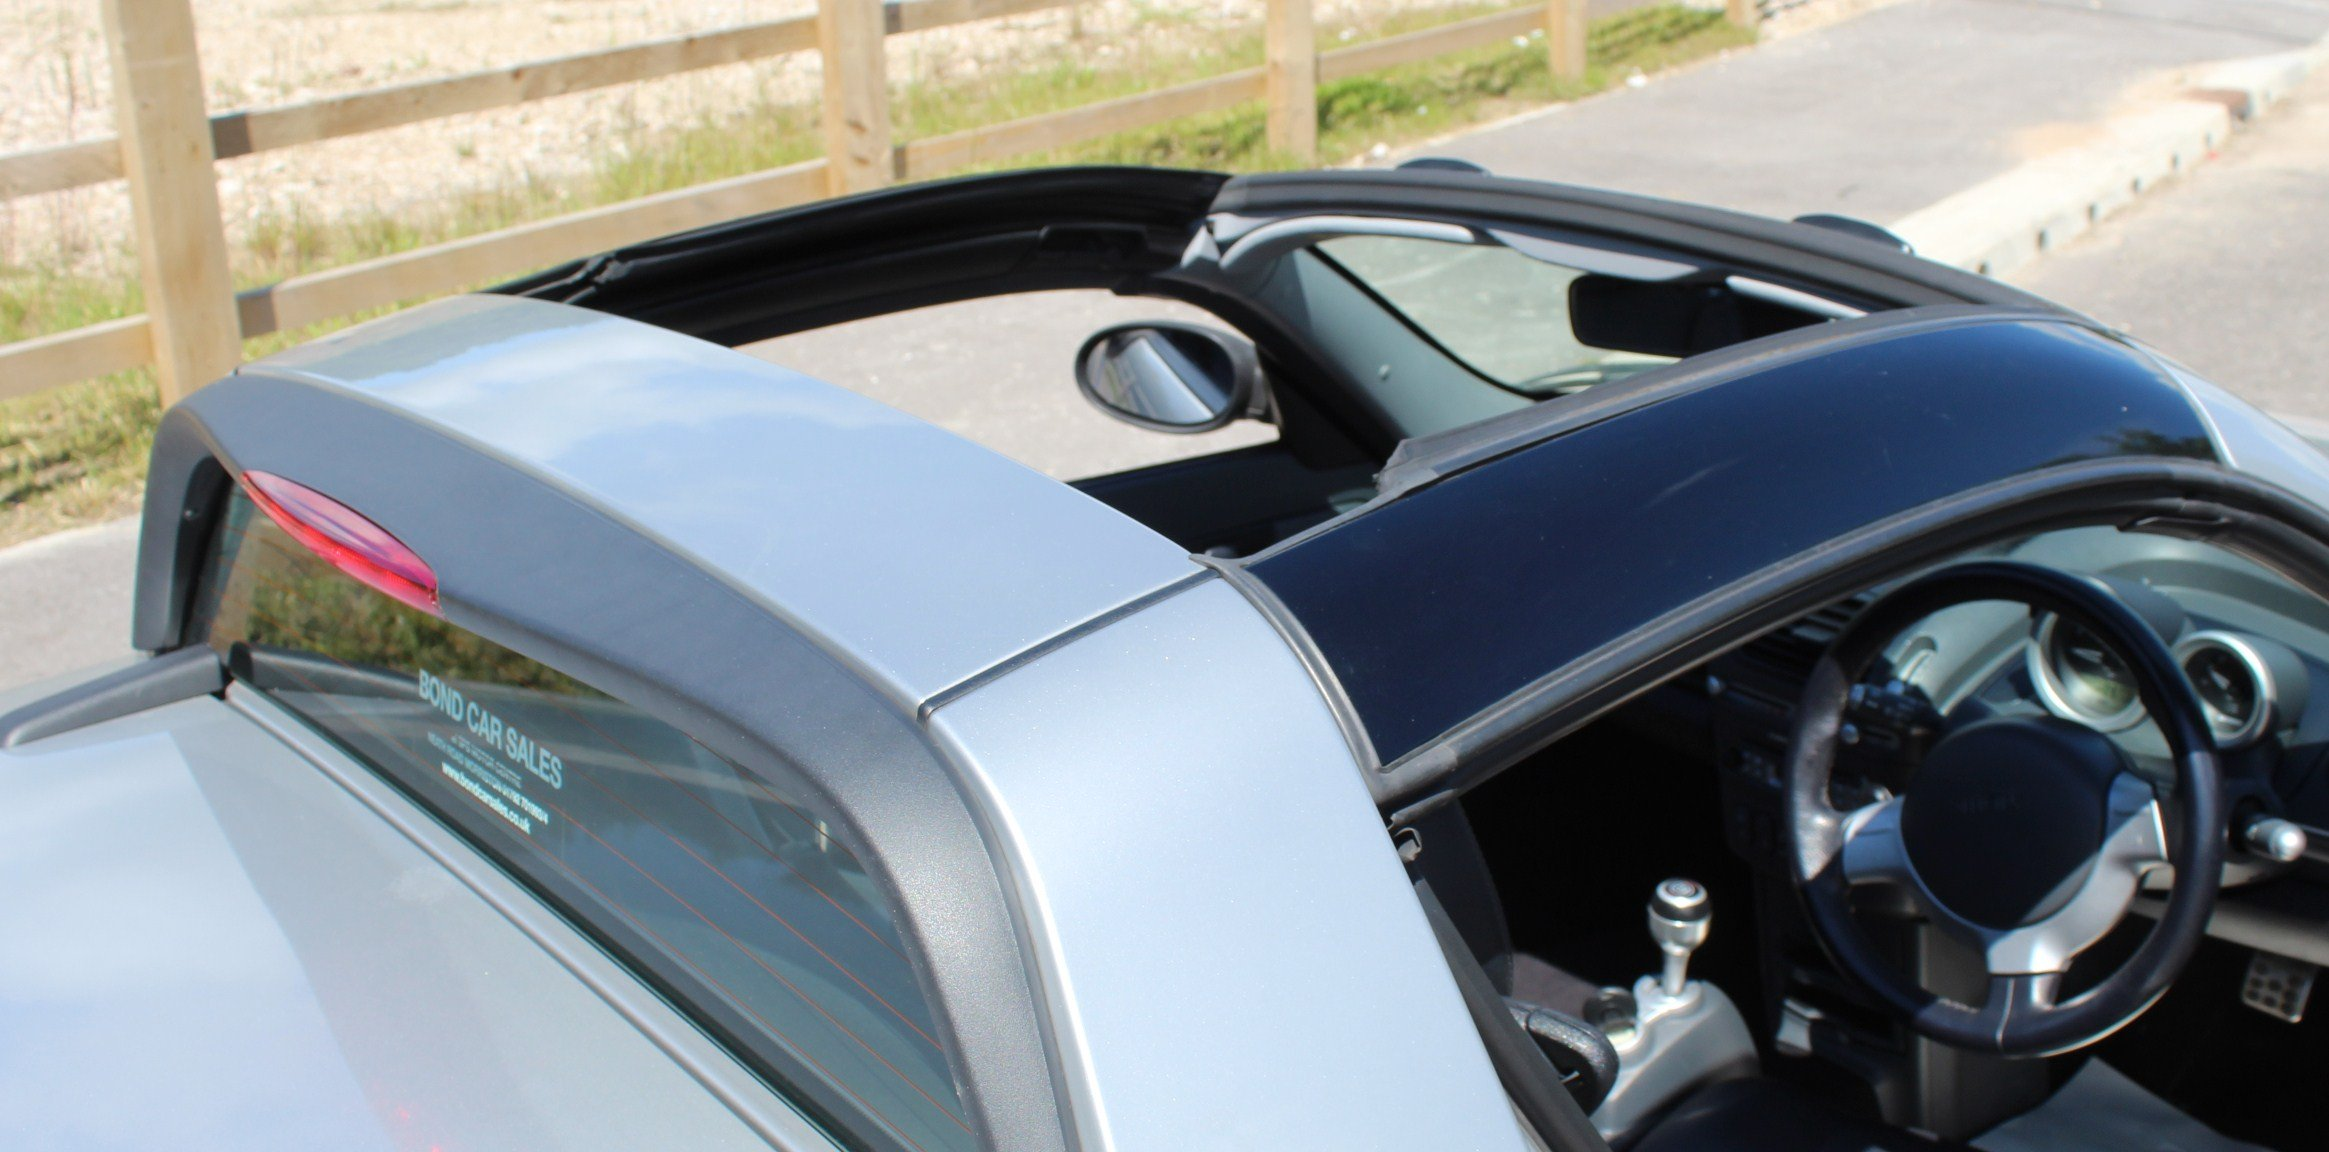 2006 Smart Roadster Brabus Exclusive 72,000 miles with FSH  SOLD (picture 6 of 6)